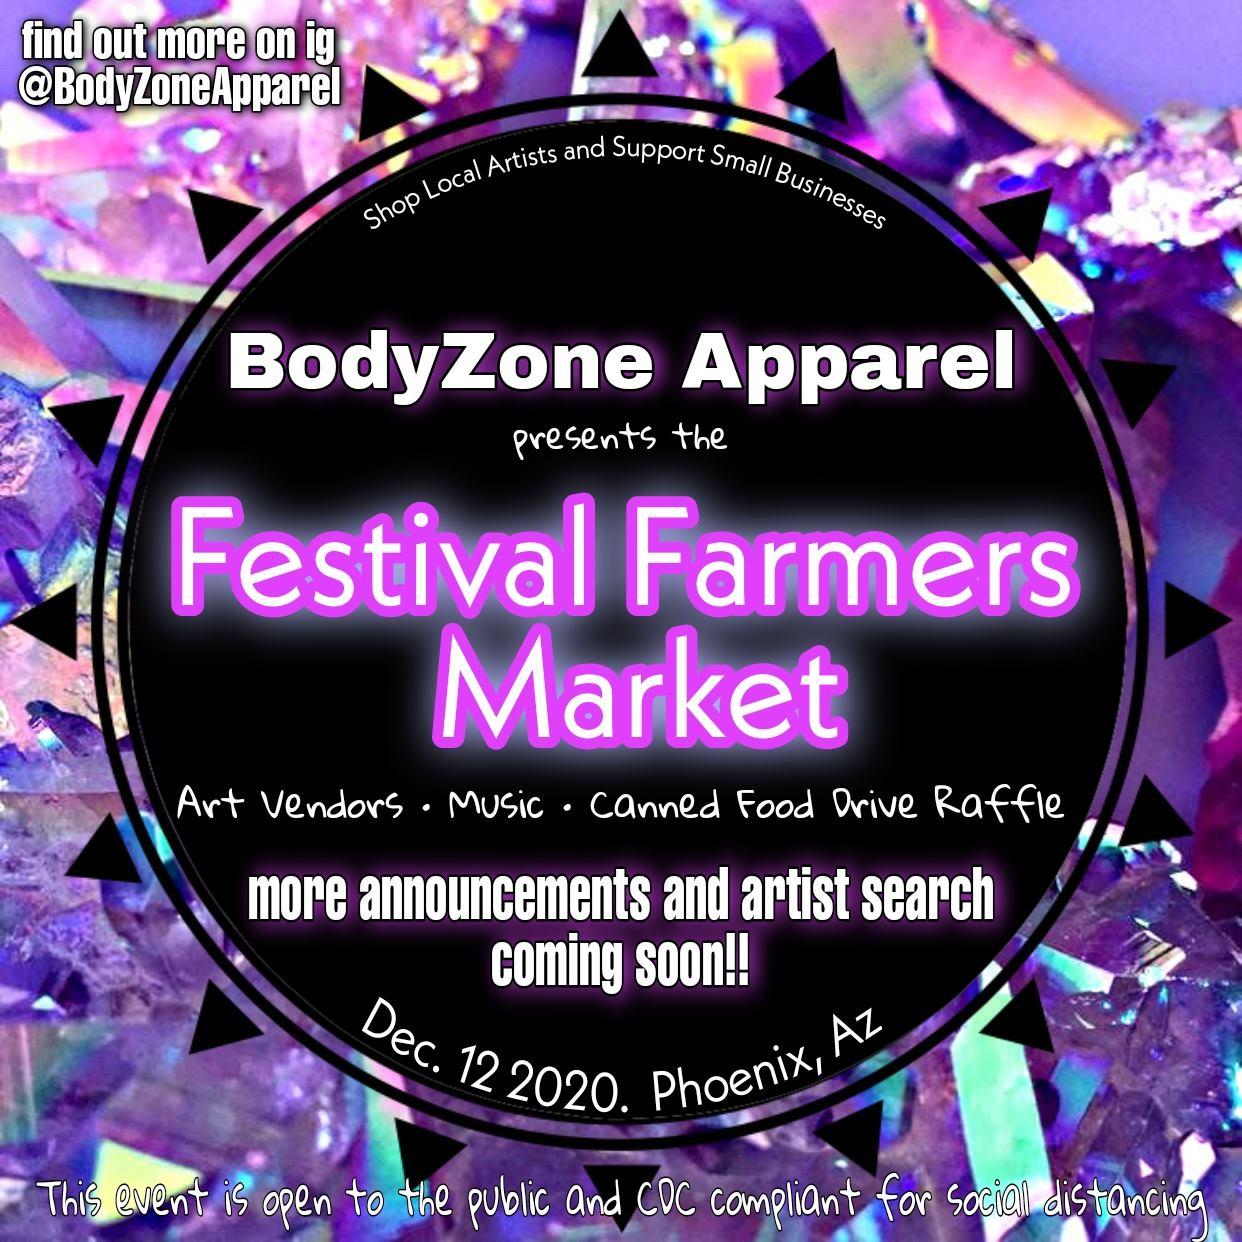 BodyZone Apparel Festival Farmers Market December 12th Noon to 5 p.m. 3108 W. Thomas rd #1201 Phoenix, AZ 85017